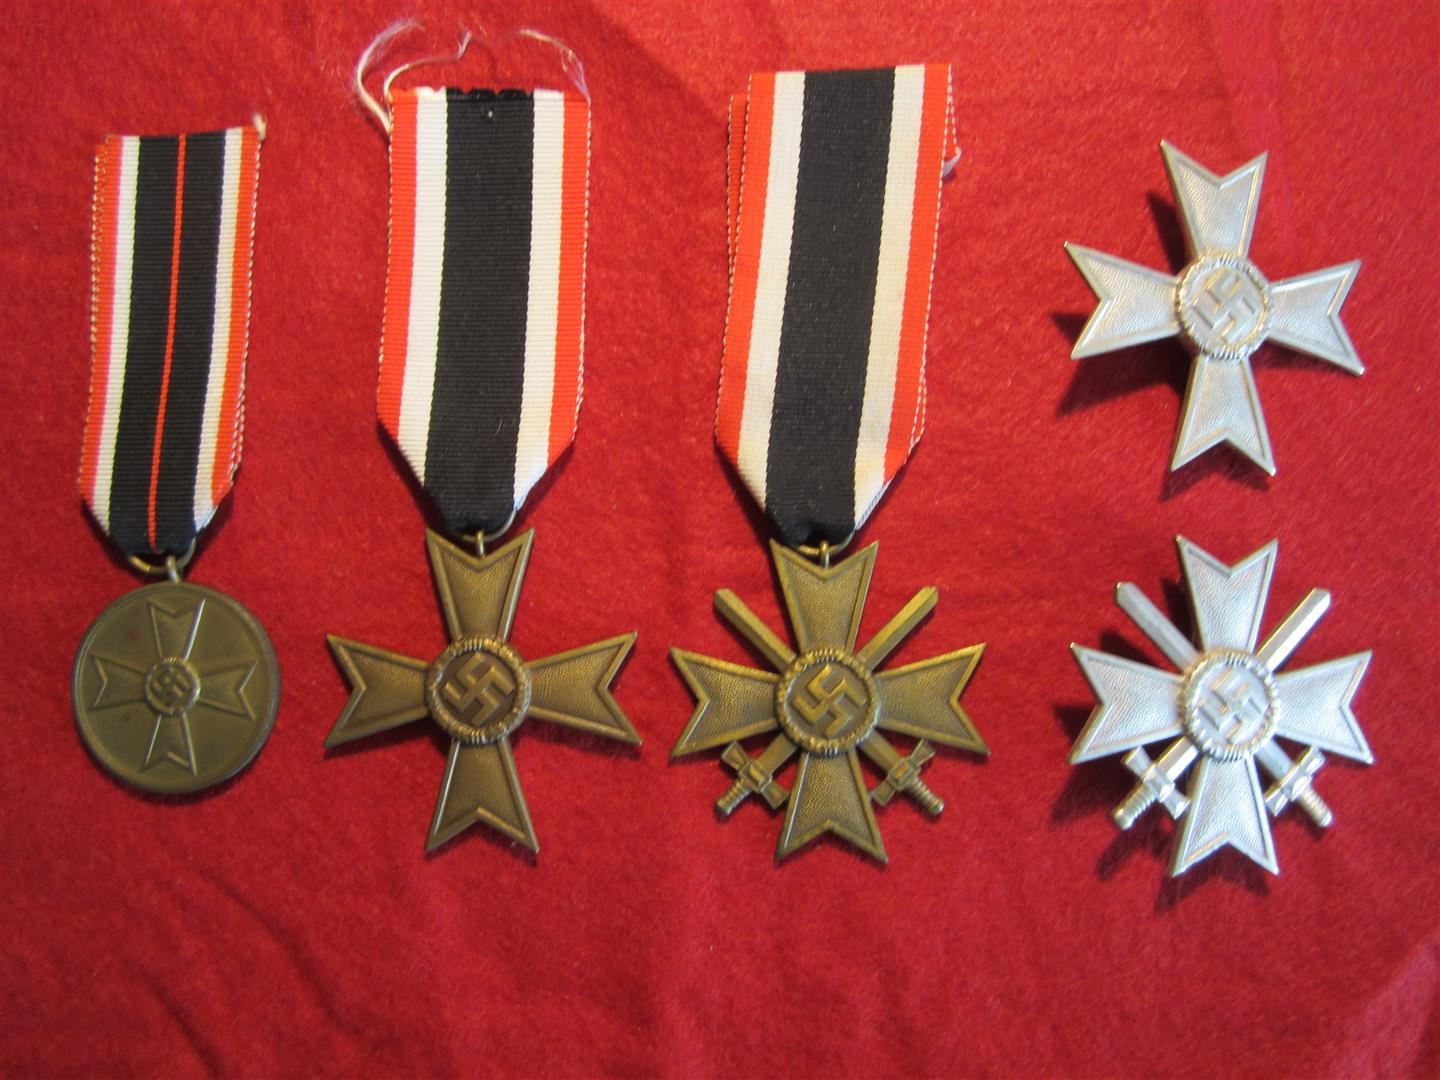 WW2 German War Merit Medals/Crosses